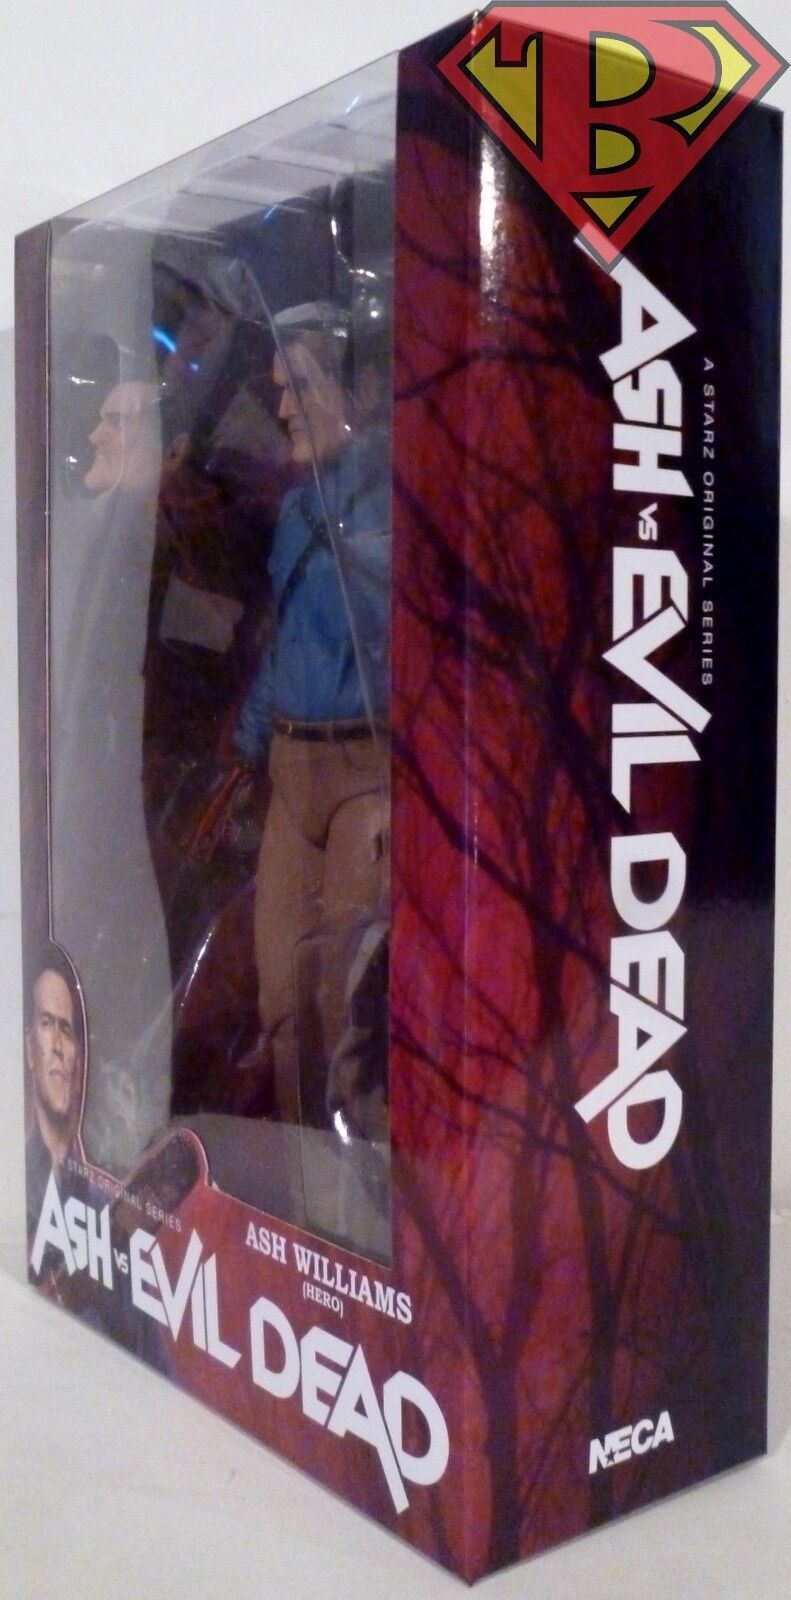 HERO ASH Ash vs Evil Dead 7  Scale Starz Starz Starz TV Action Figure Series 1 Neca 2016 efd78d